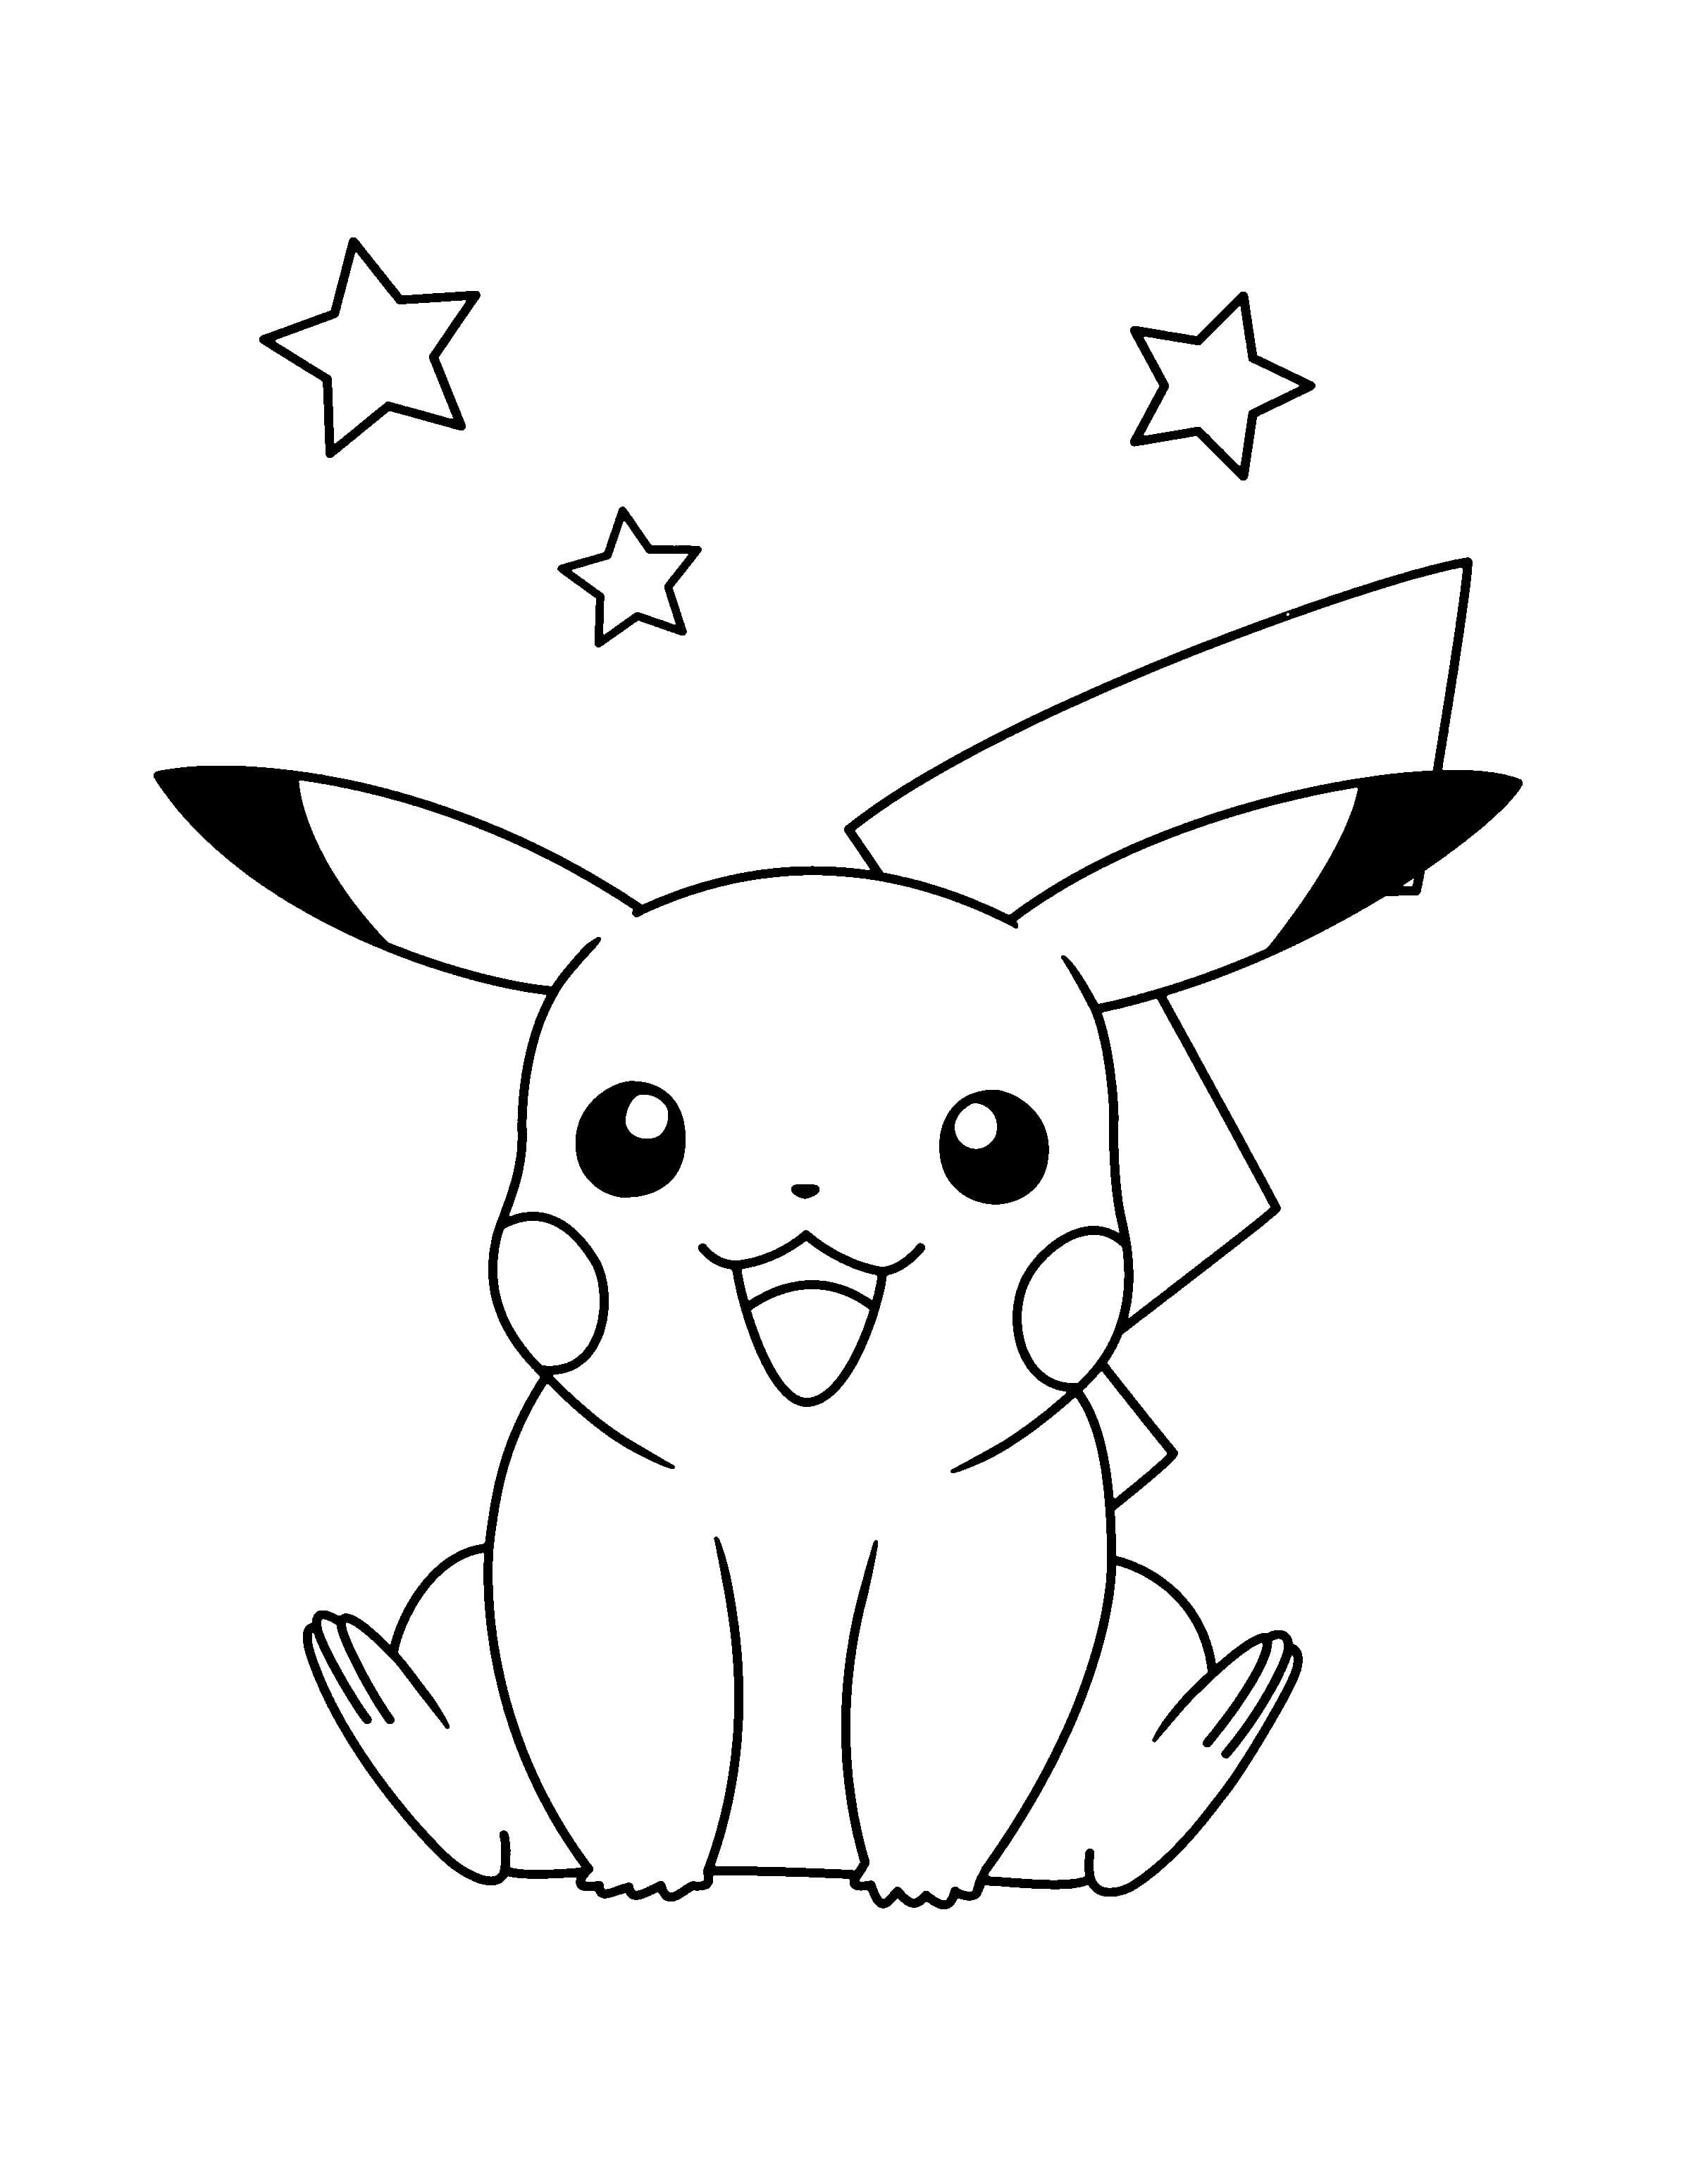 Pikachu Coloring Pages 100 Images Of All Pokemon Free Printable